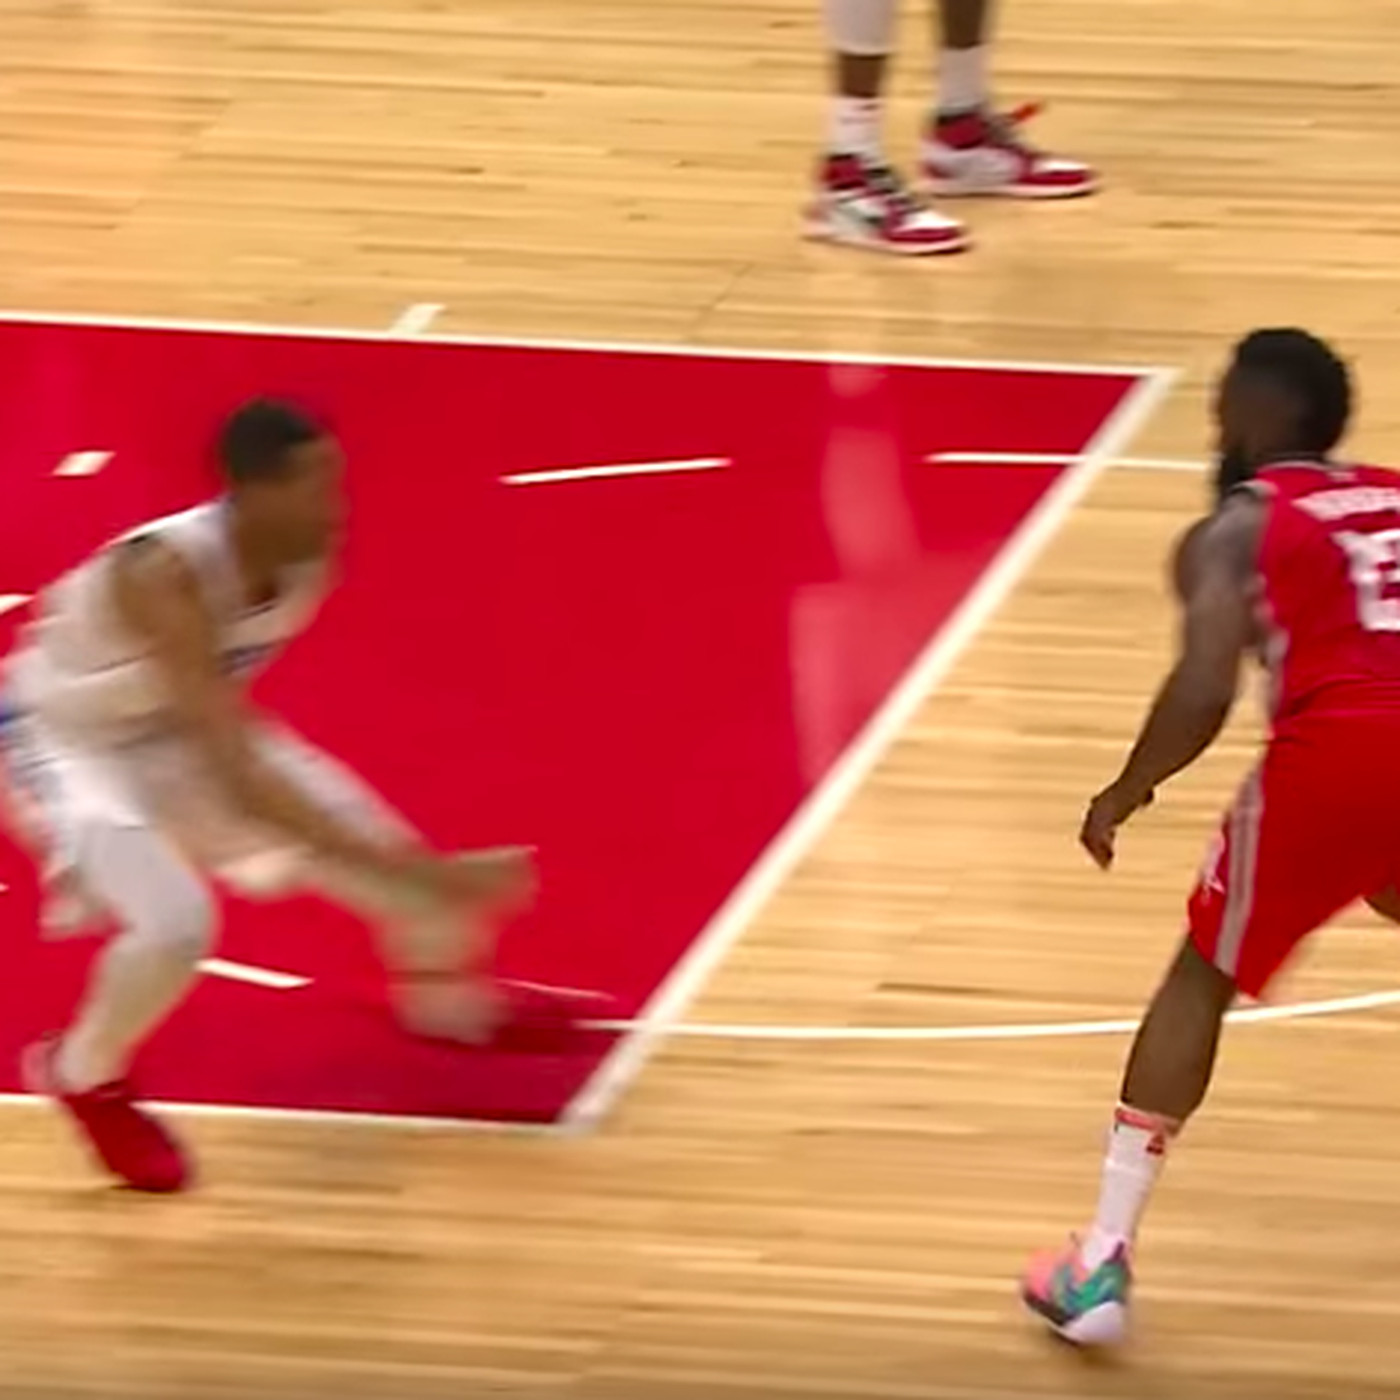 b81b214dc 13 most disrespectful things from James Harden s crossover on Wesley Johnson  - SBNation.com